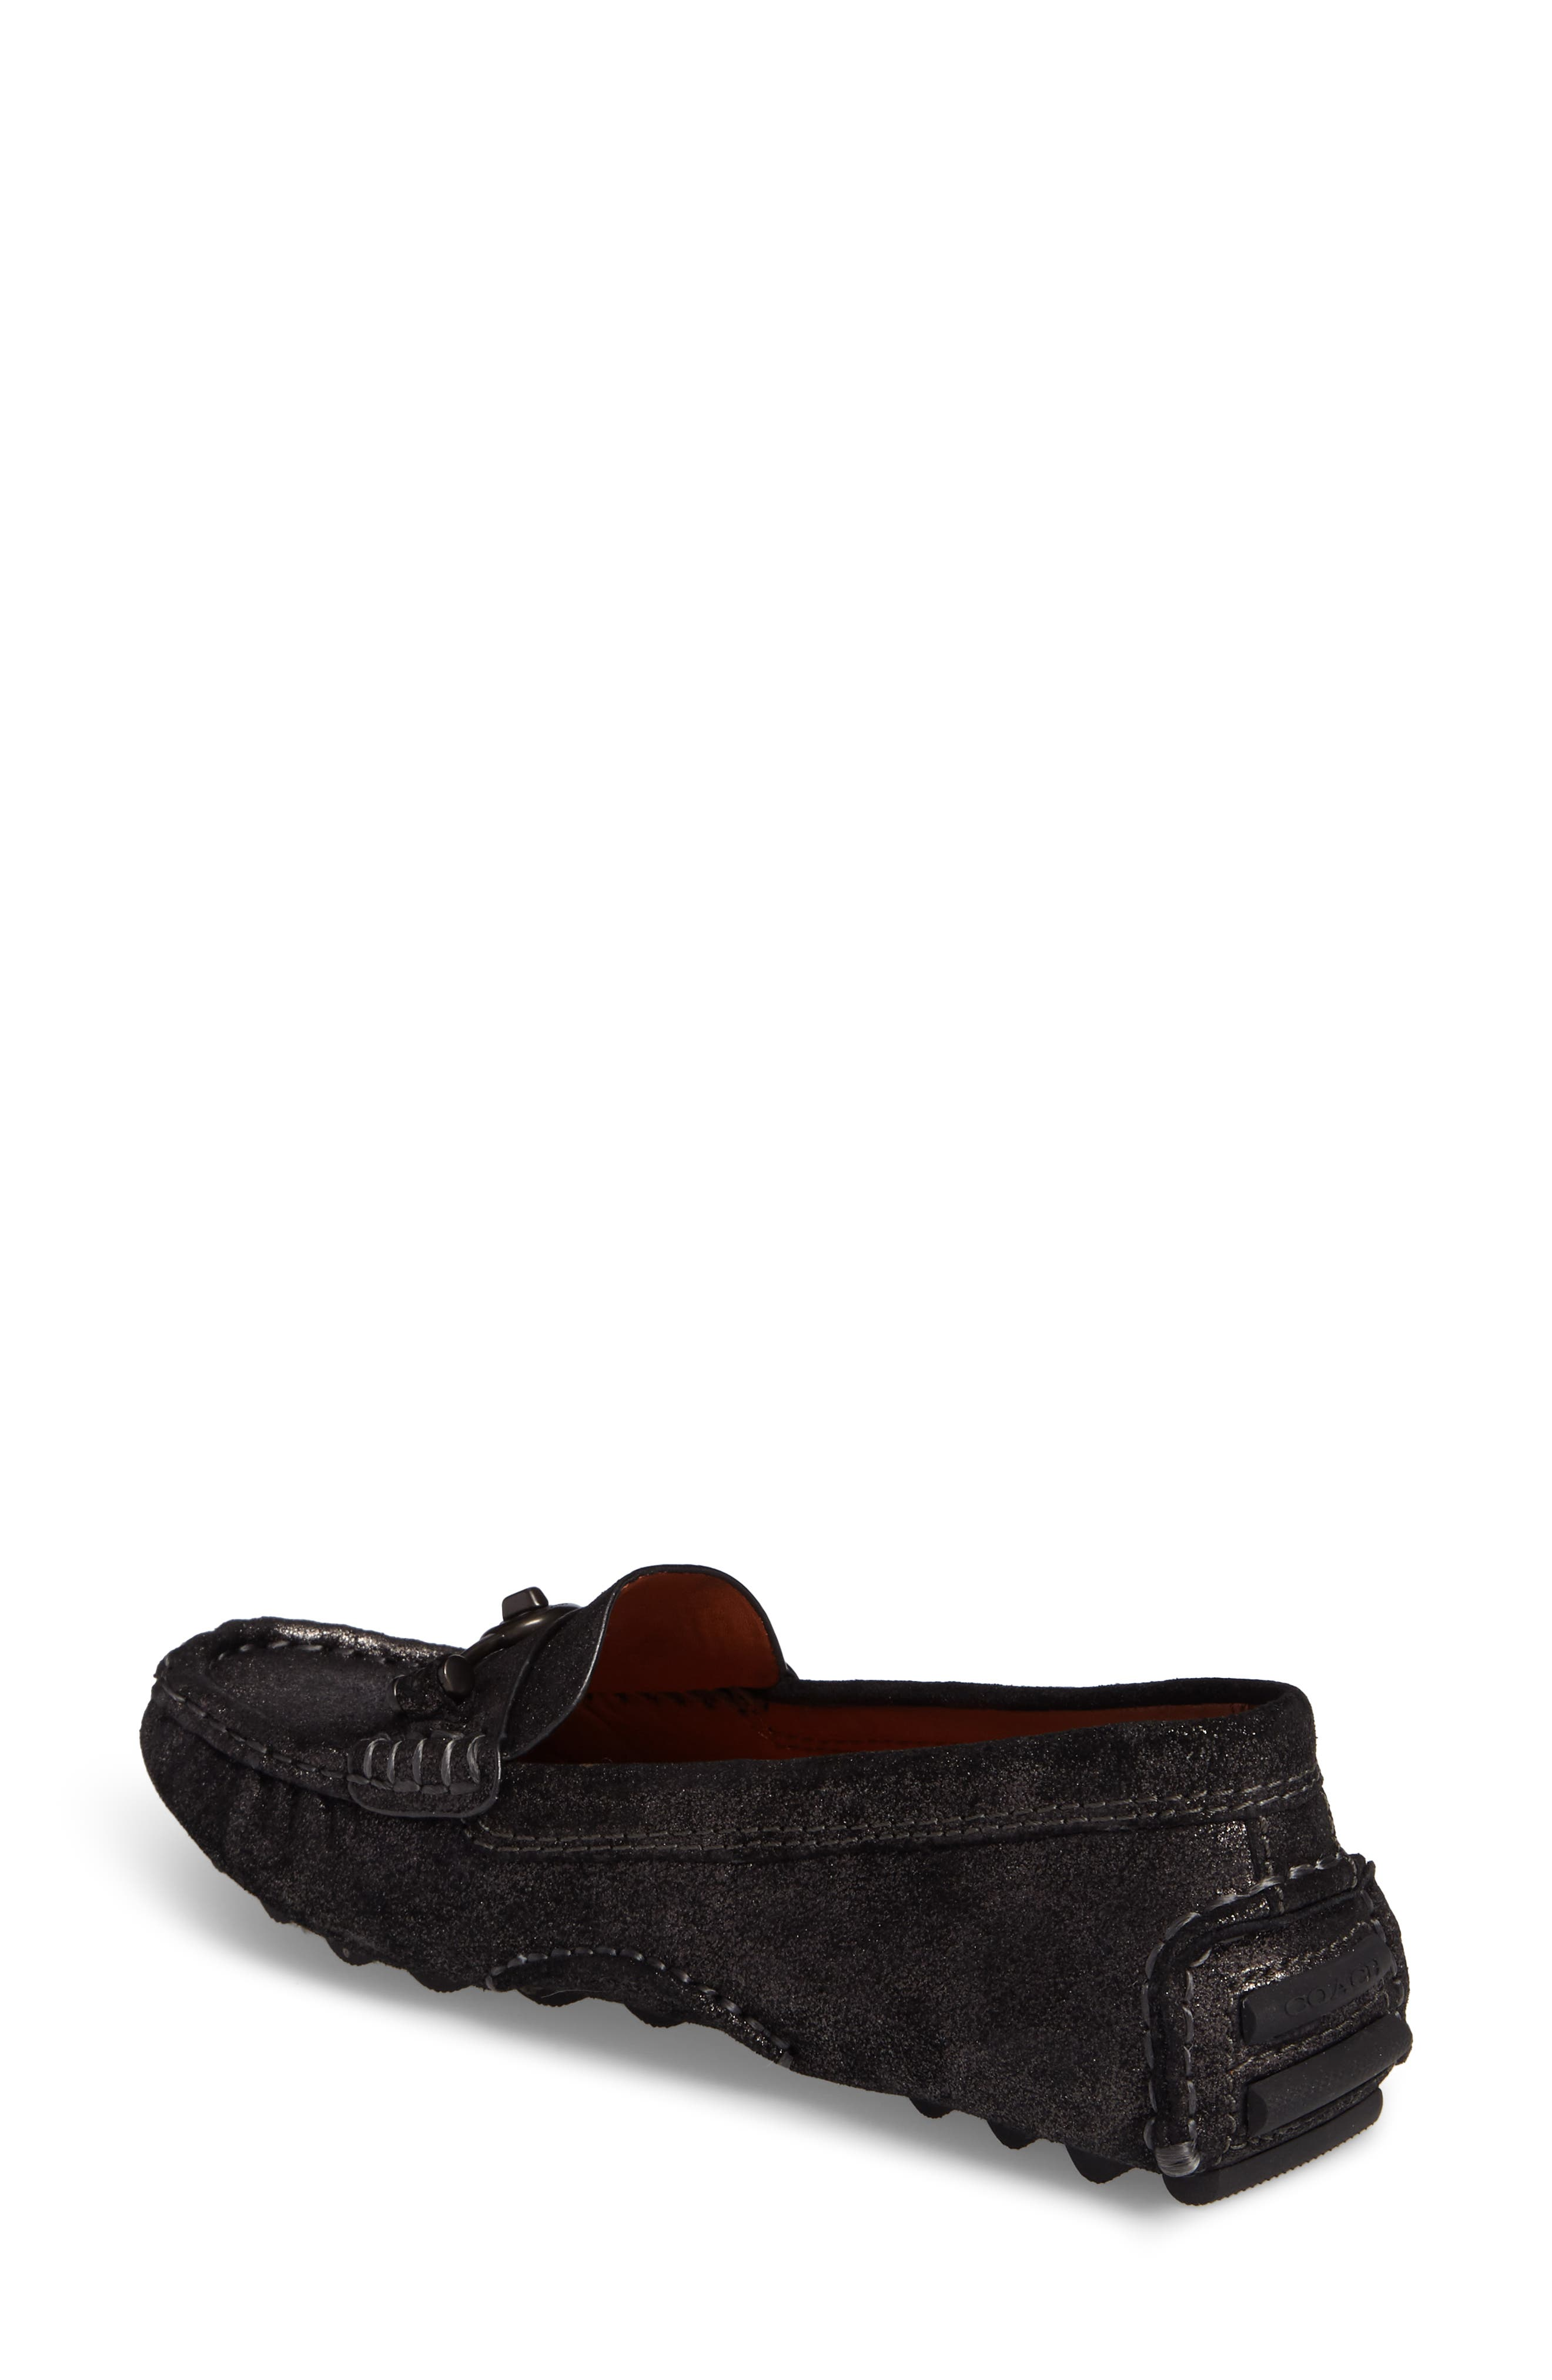 Crosby Driving Loafer,                             Alternate thumbnail 2, color,                             ANTHRACITE SUEDE